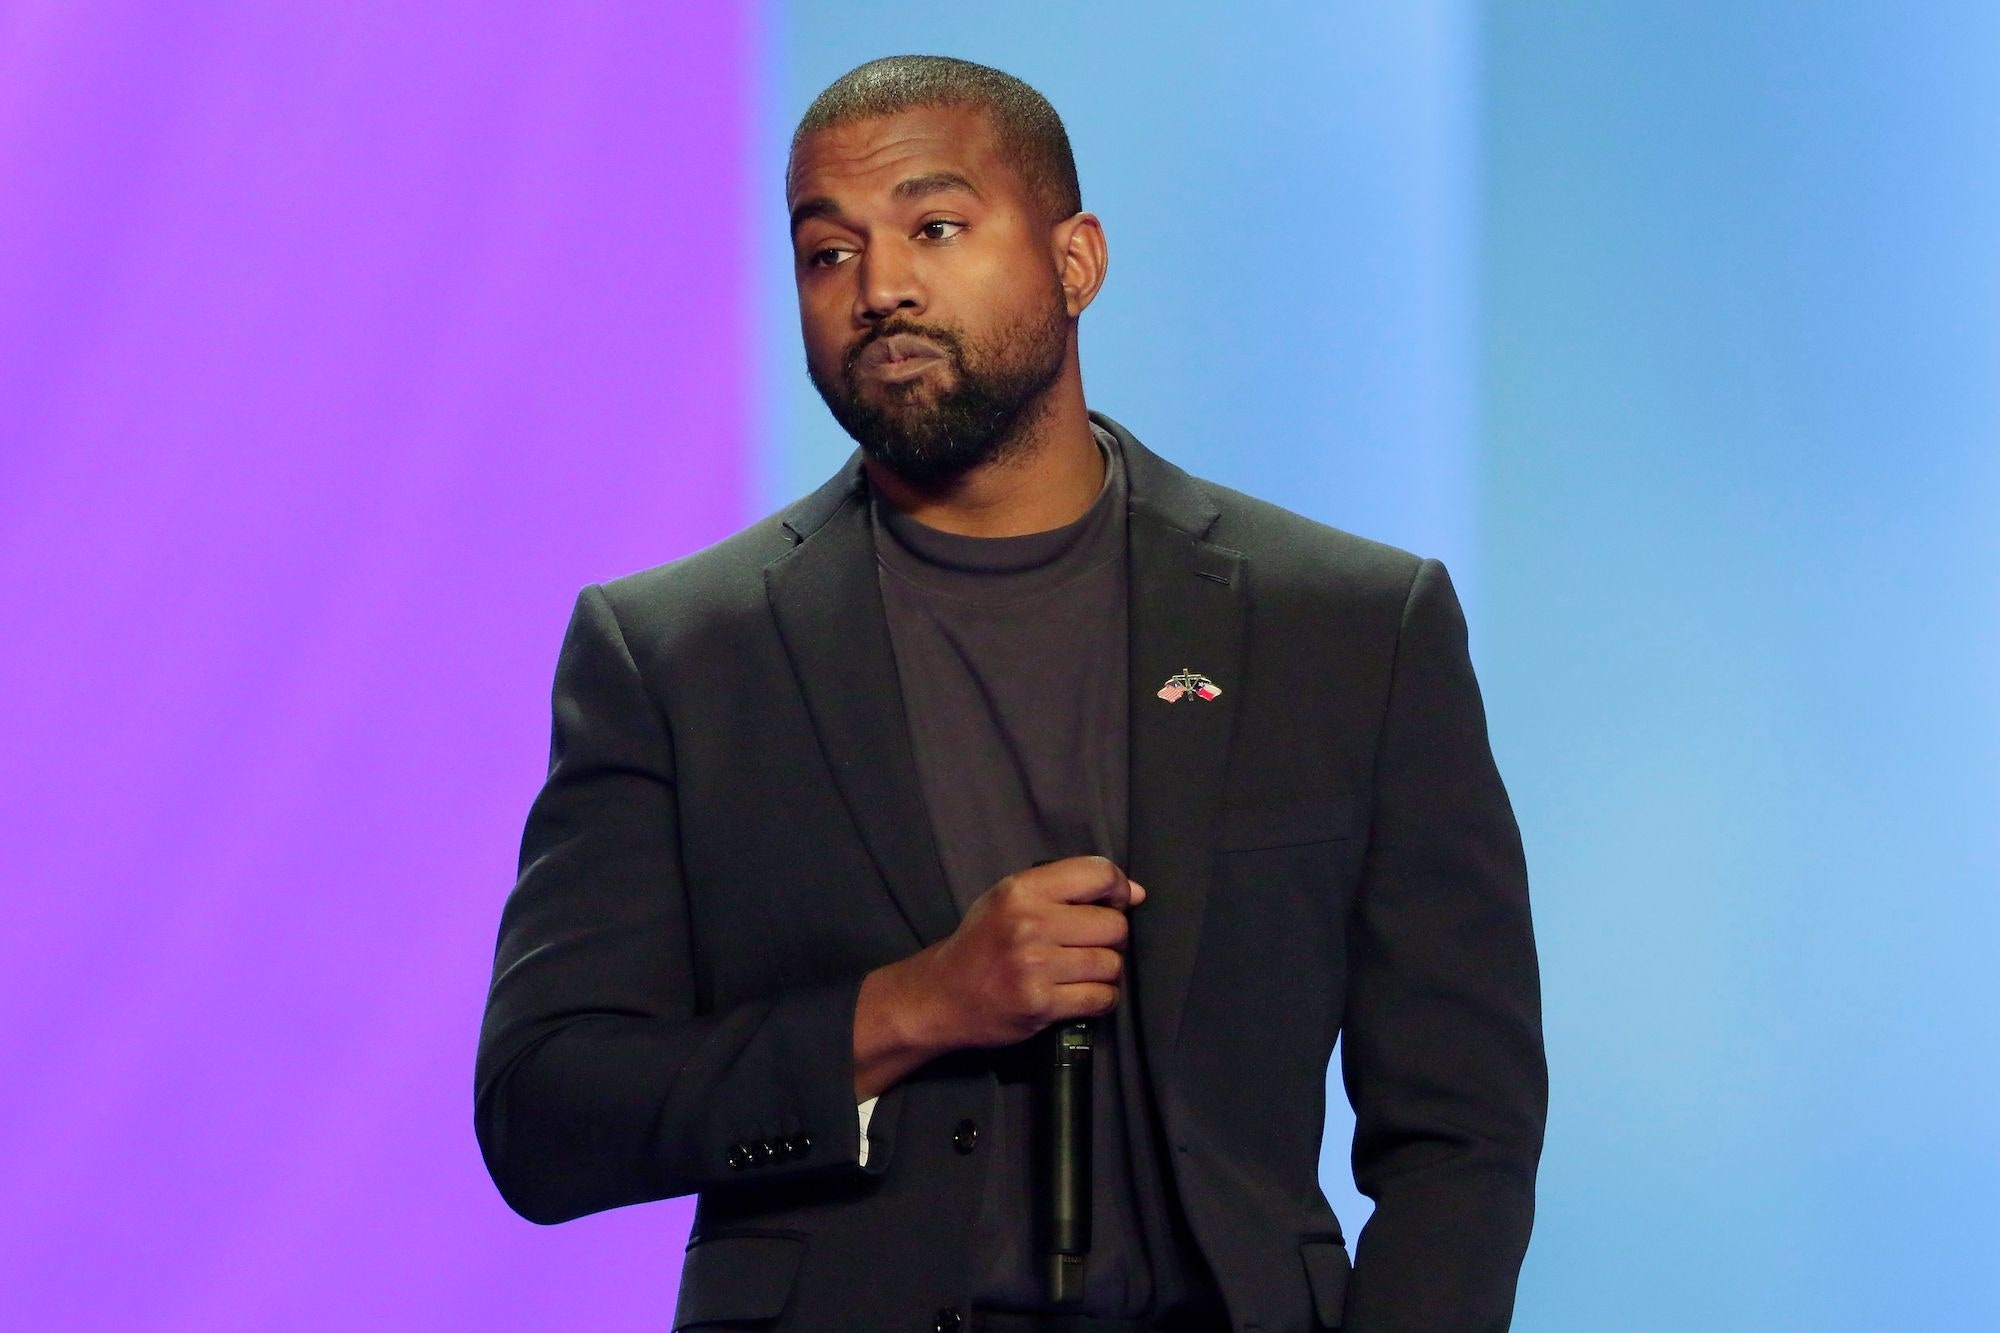 kanye-west-proudly-votes-for-himself-and-social-media-drags-him